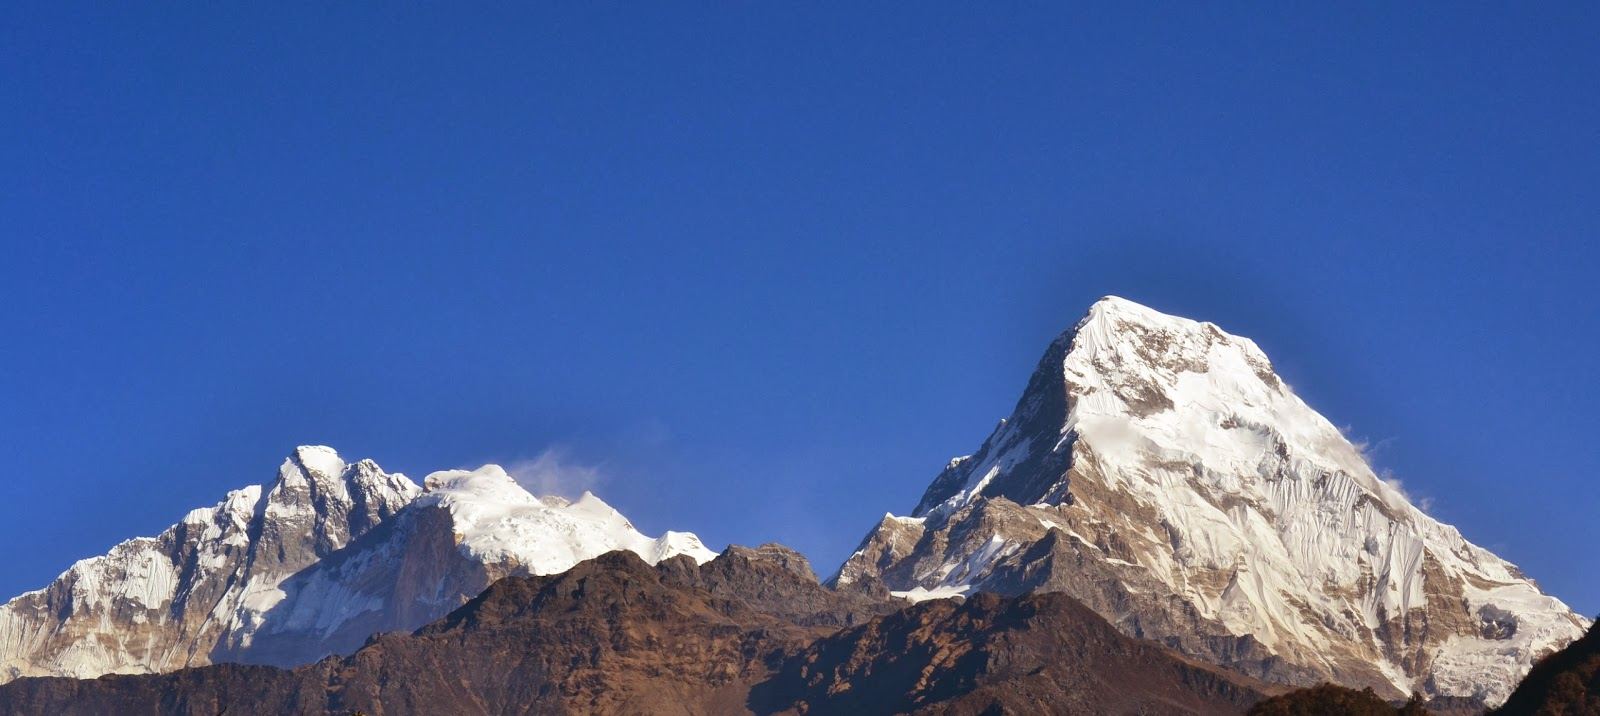 We Are Not Lost Blog: Trekking In Nepal - Poon Hill